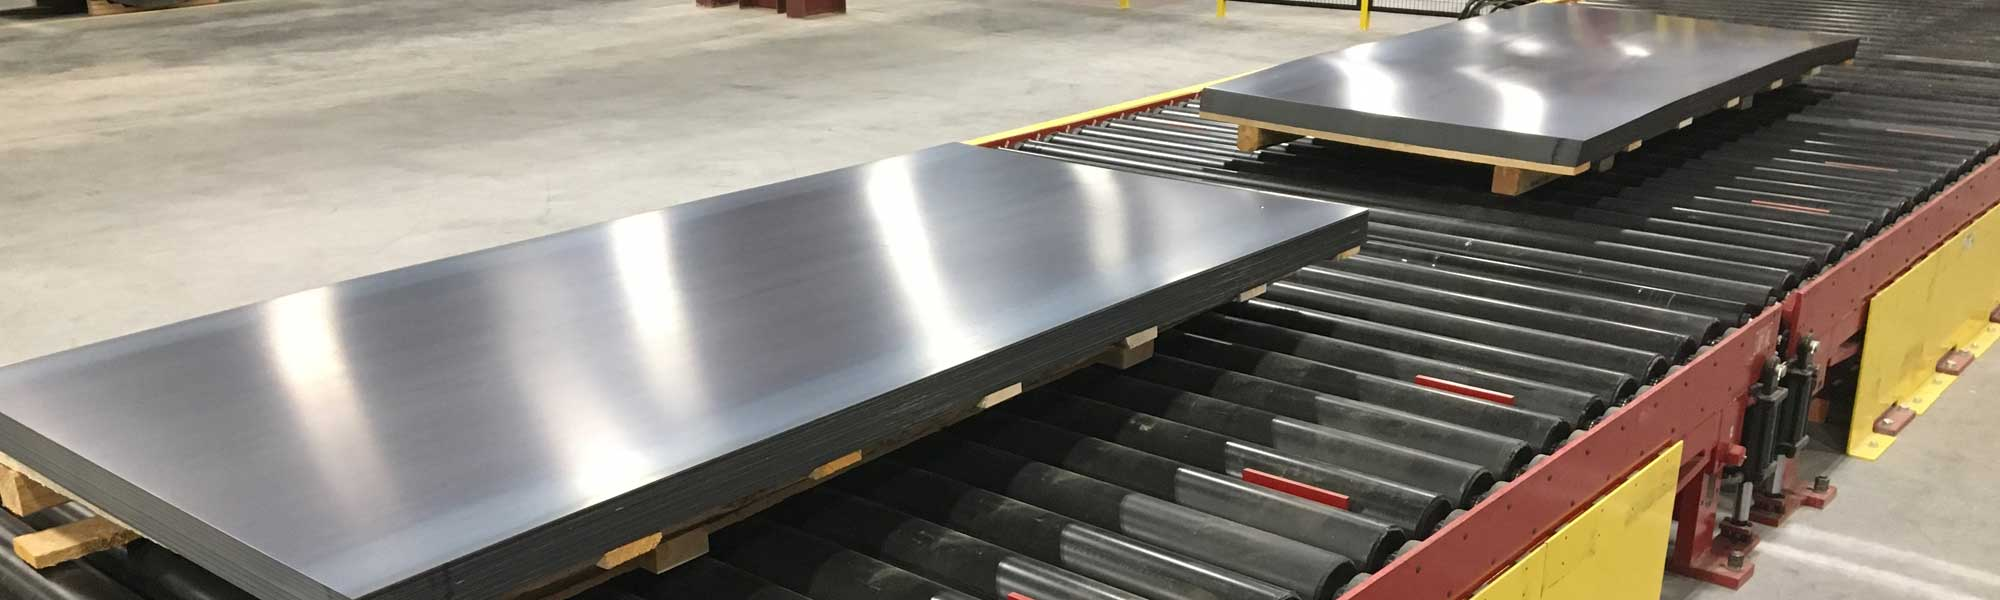 large steel plates at distribution center